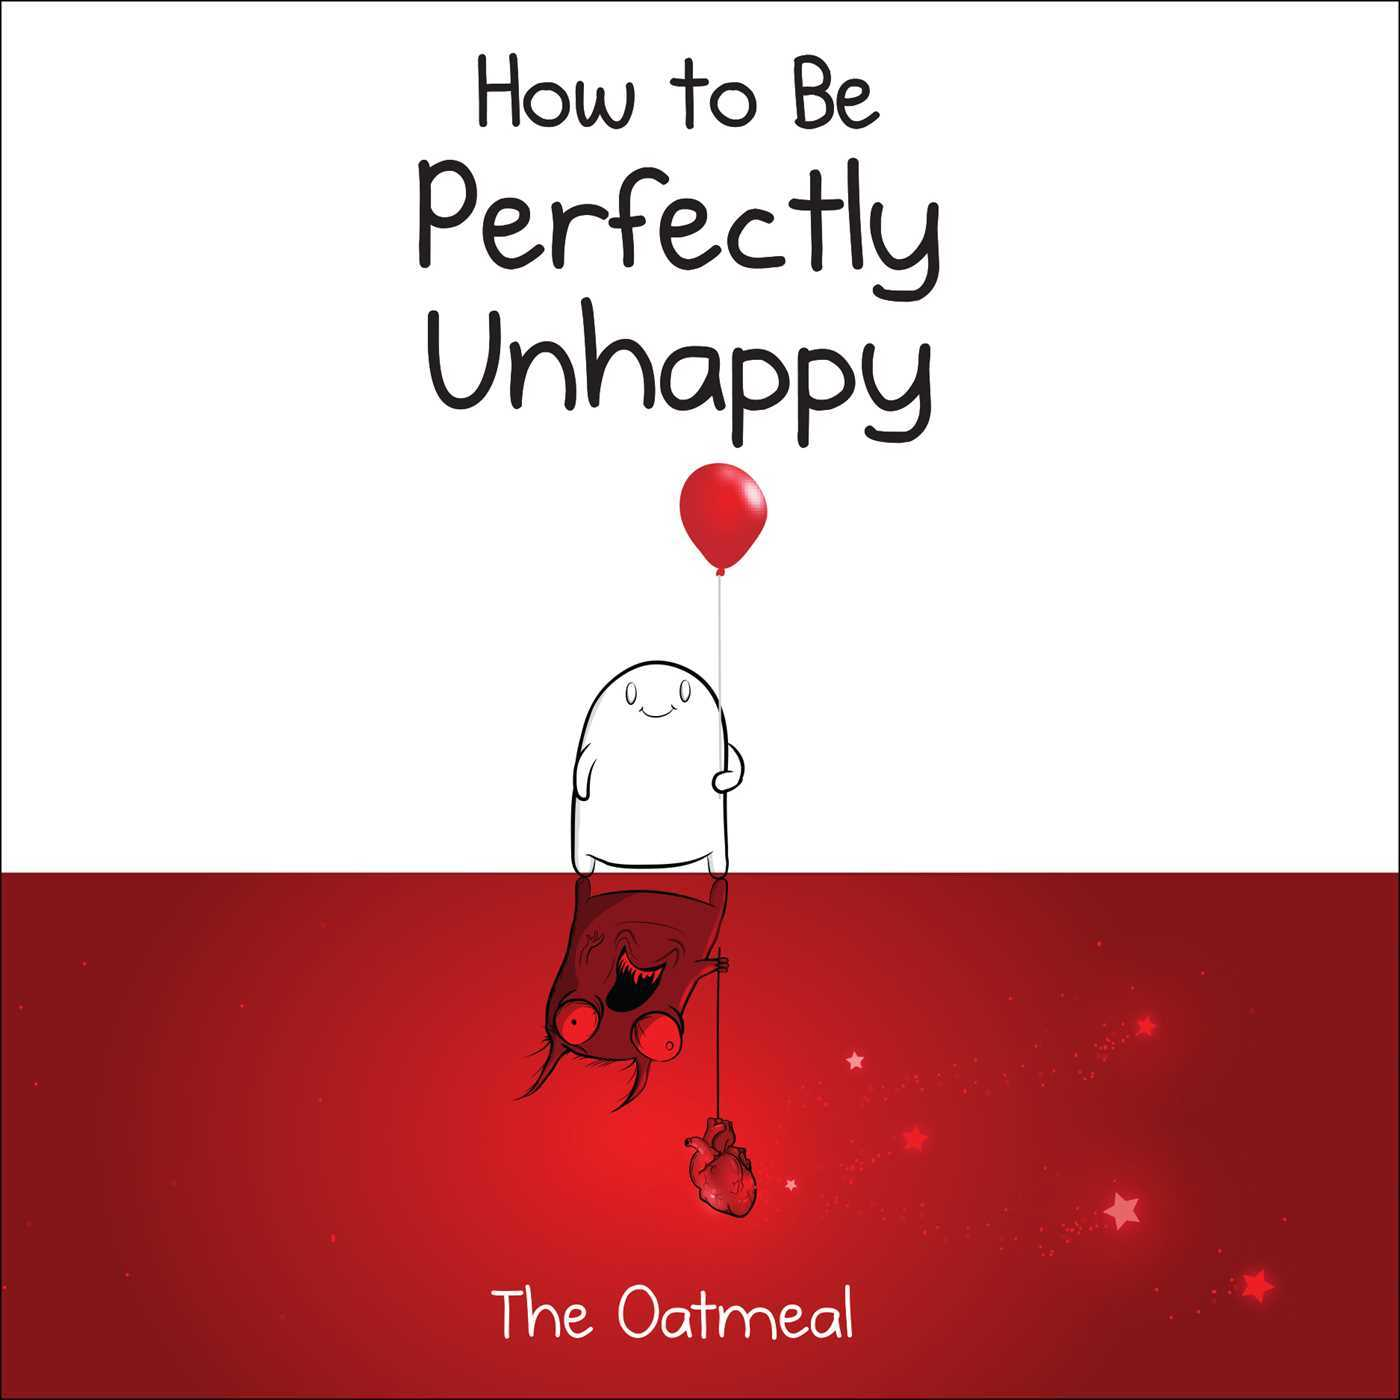 How to Be Perfectly Unhappy